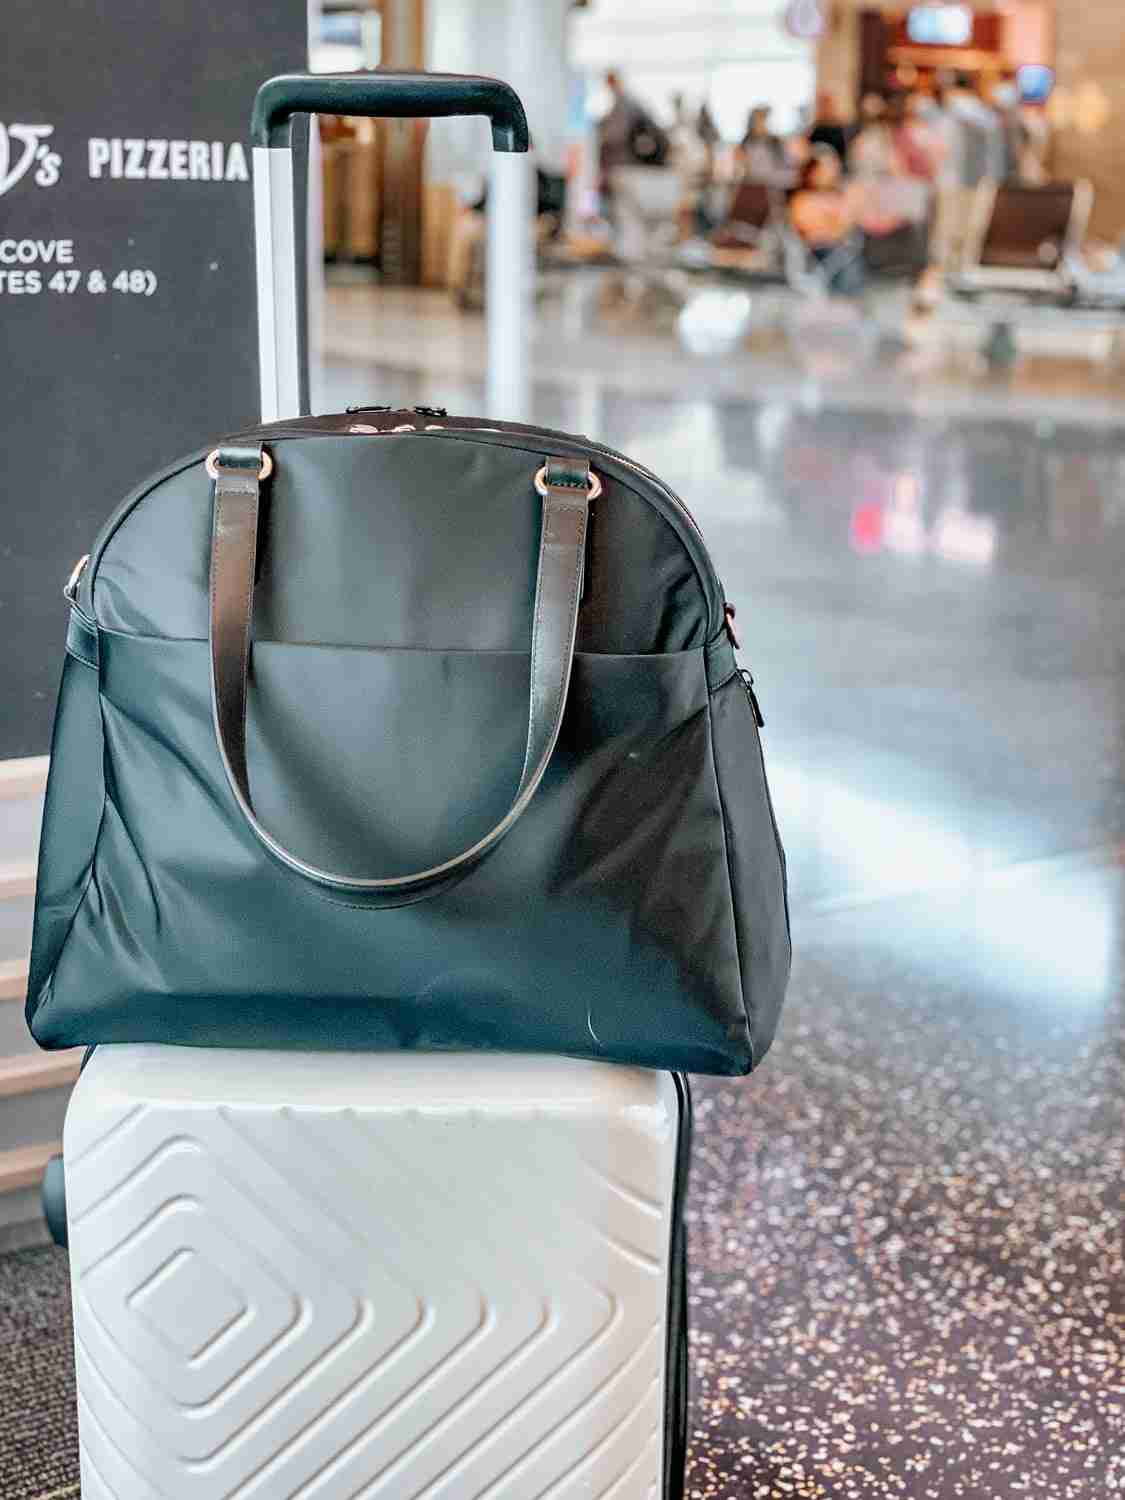 carry-on bags at airport